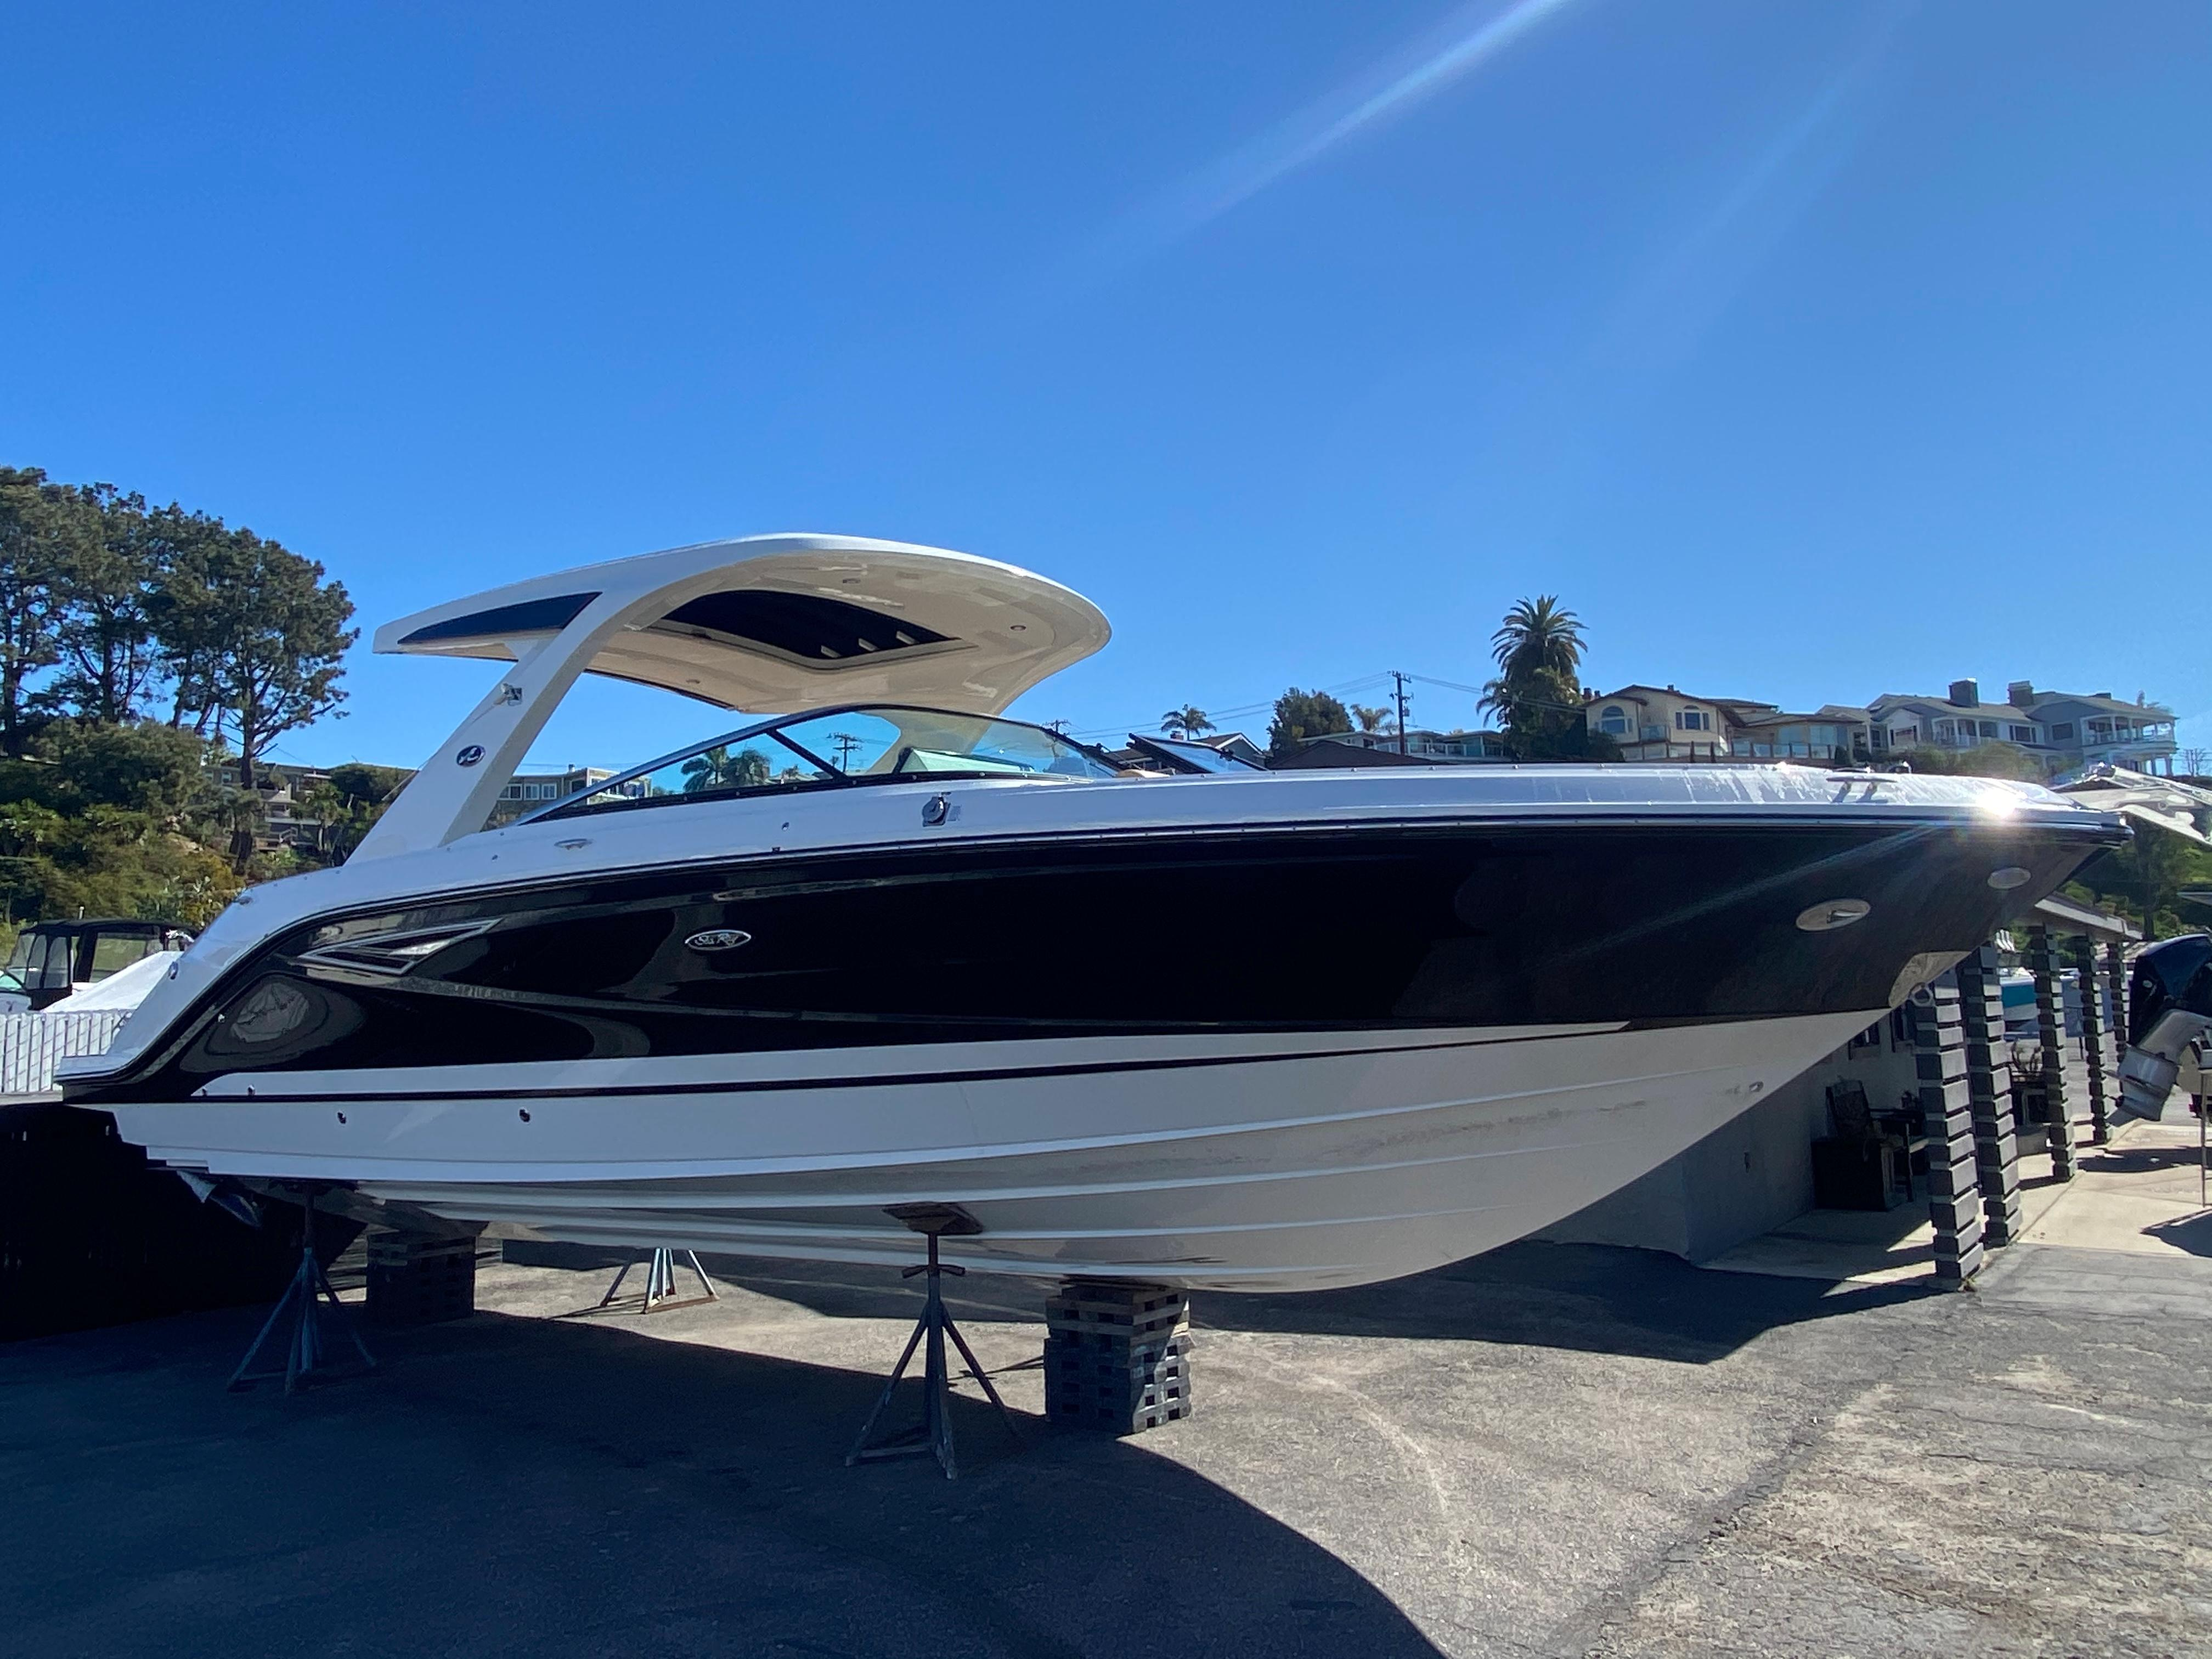 2021 Sea Ray SLX 310 #S1823A inventory image at Sun Country Coastal in Newport Beach